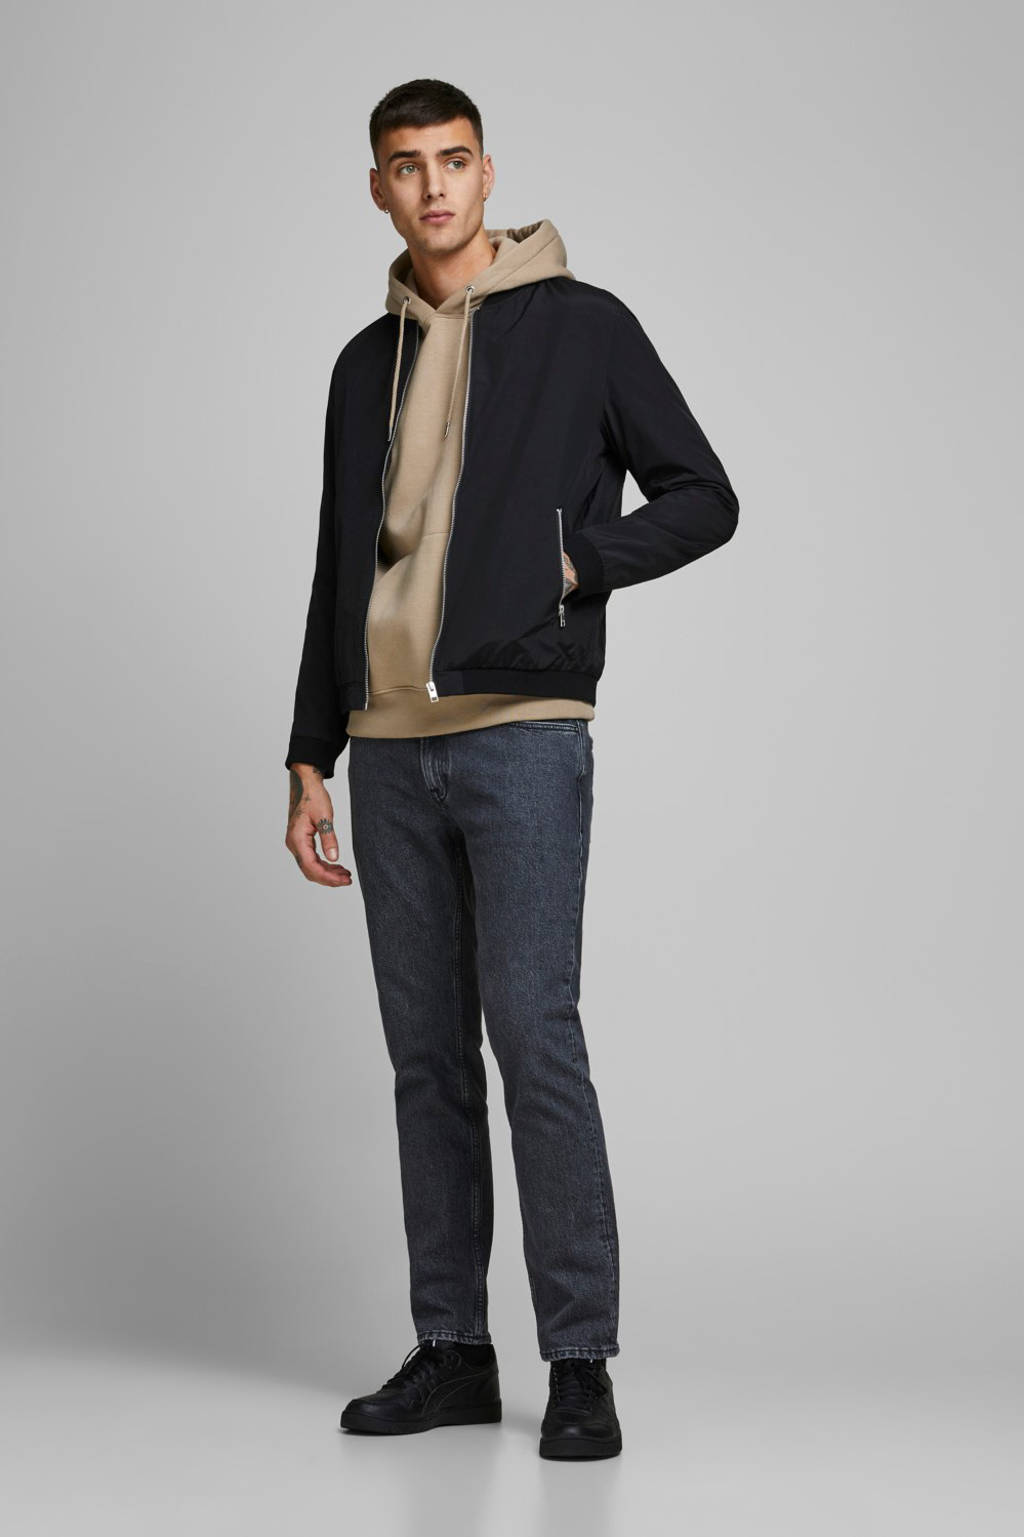 JACK & JONES ESSENTIALS bomberjack zwart, Zwart